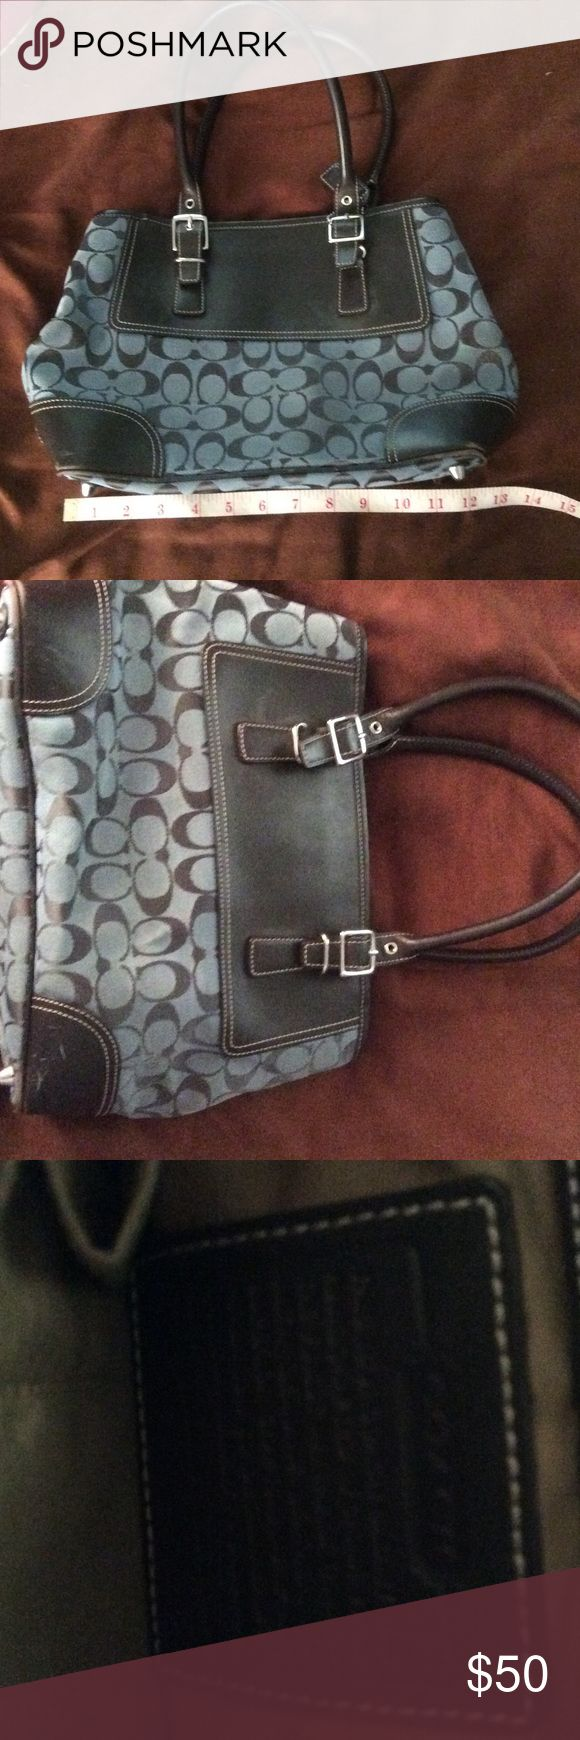 Coach purse, great with jeans Authentic Blue and black signature coach purse, in great condition, some scuffs on leather bottom sides but all in all very clean Coach Bags Hobos